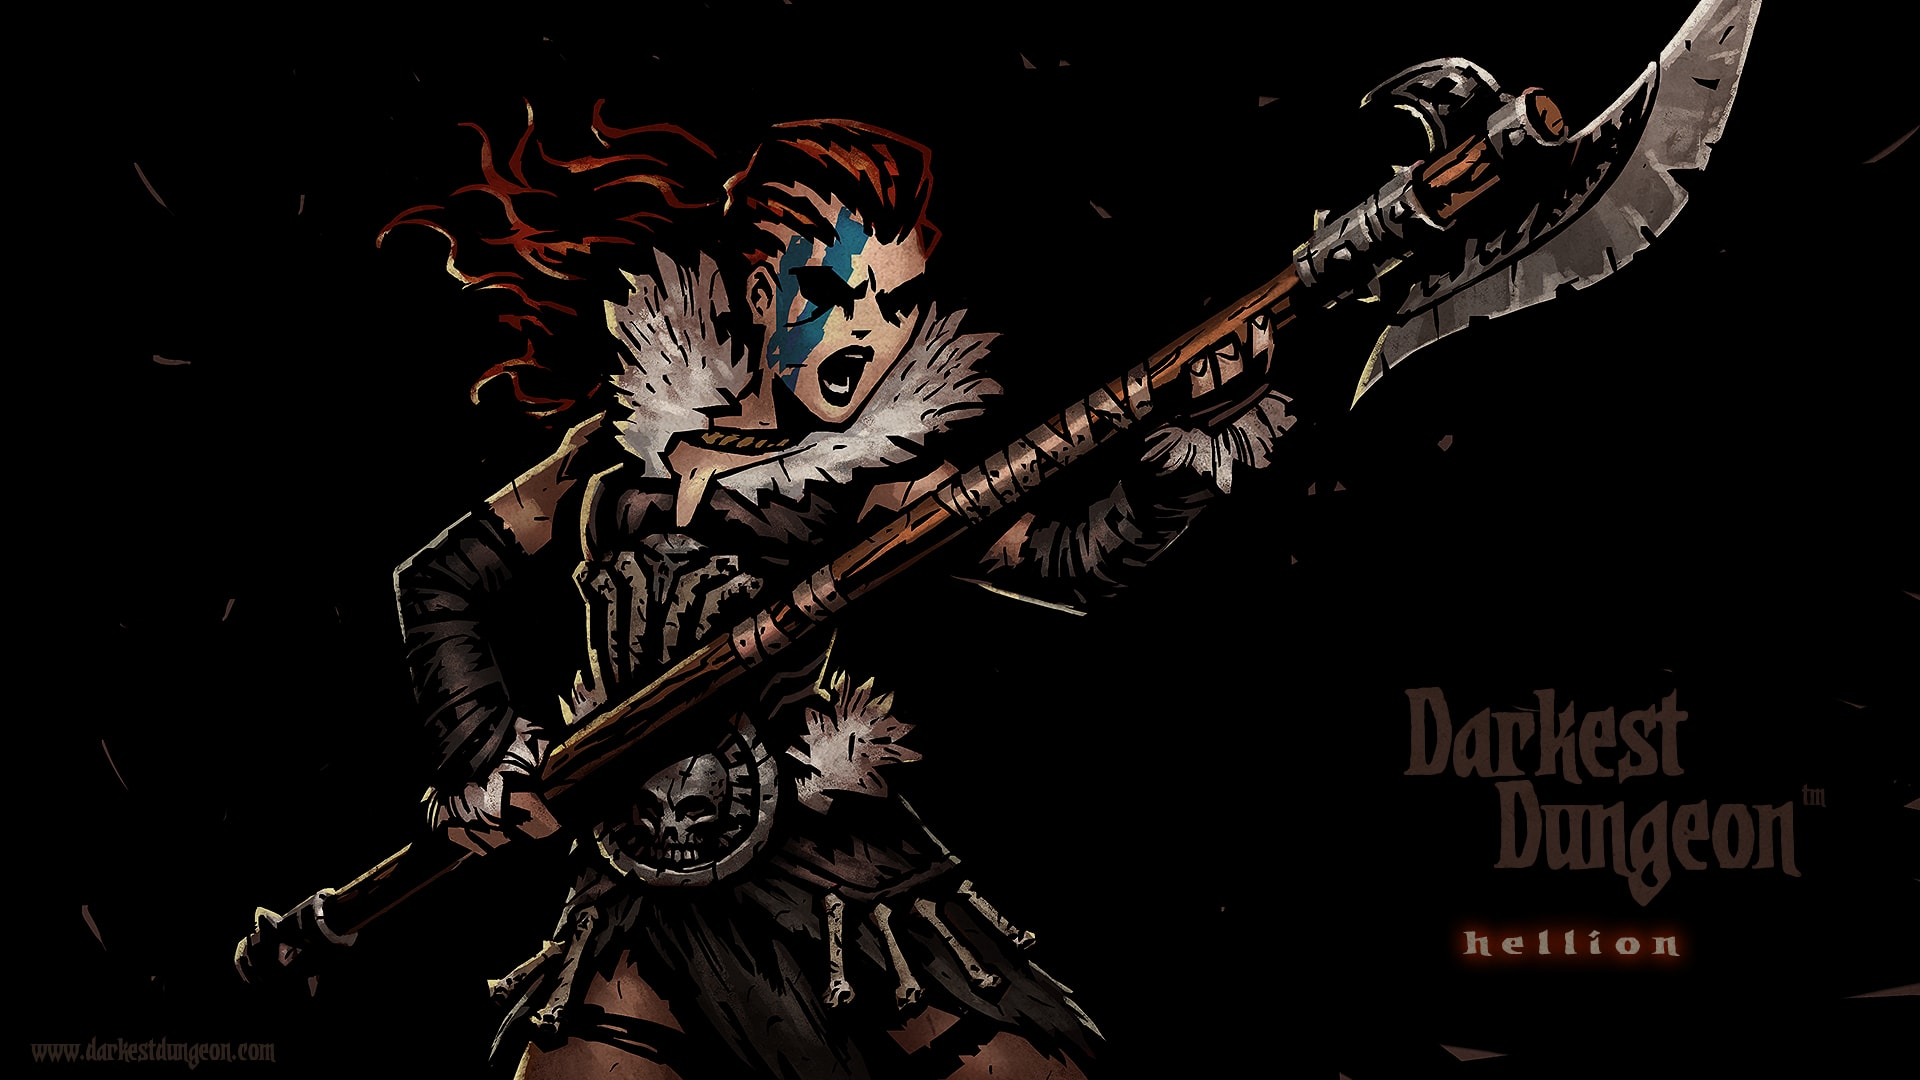 Darkest Dungeon: Hellion Wallpapers